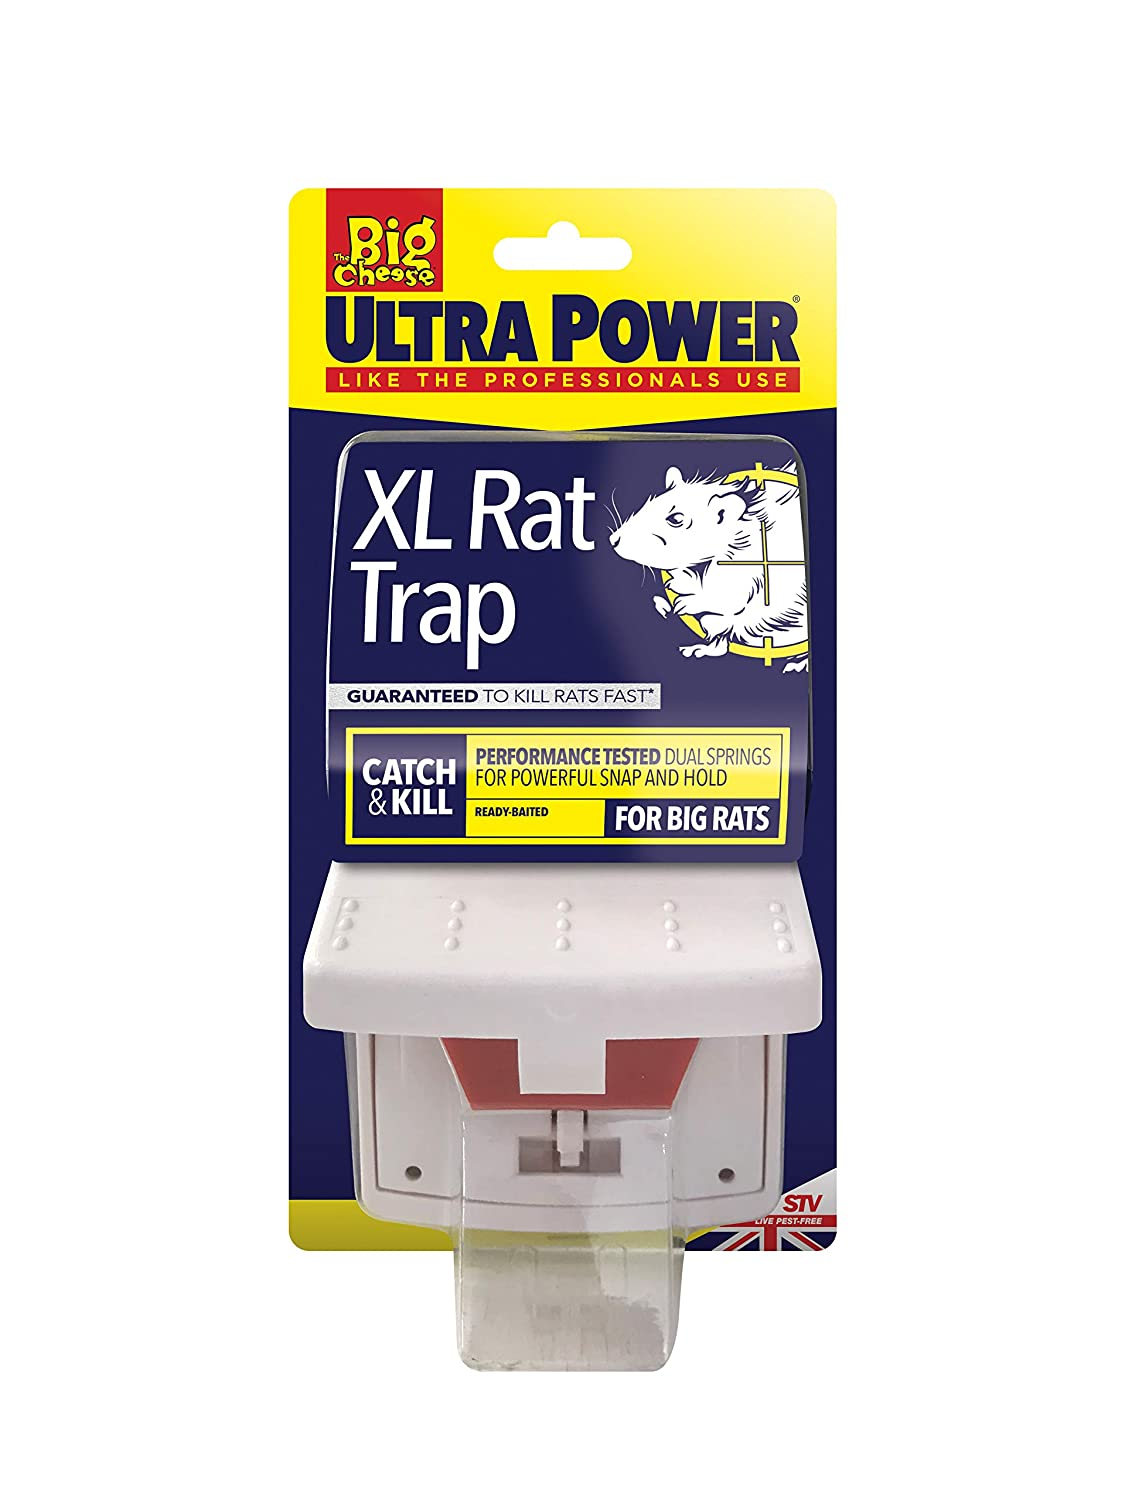 STV International The Big Cheese Ultra Power Super Rat Trap (Powerful,  Super-Sized Trap, Kills Rodent Pests Instantly, Quick Results Guaranteed)